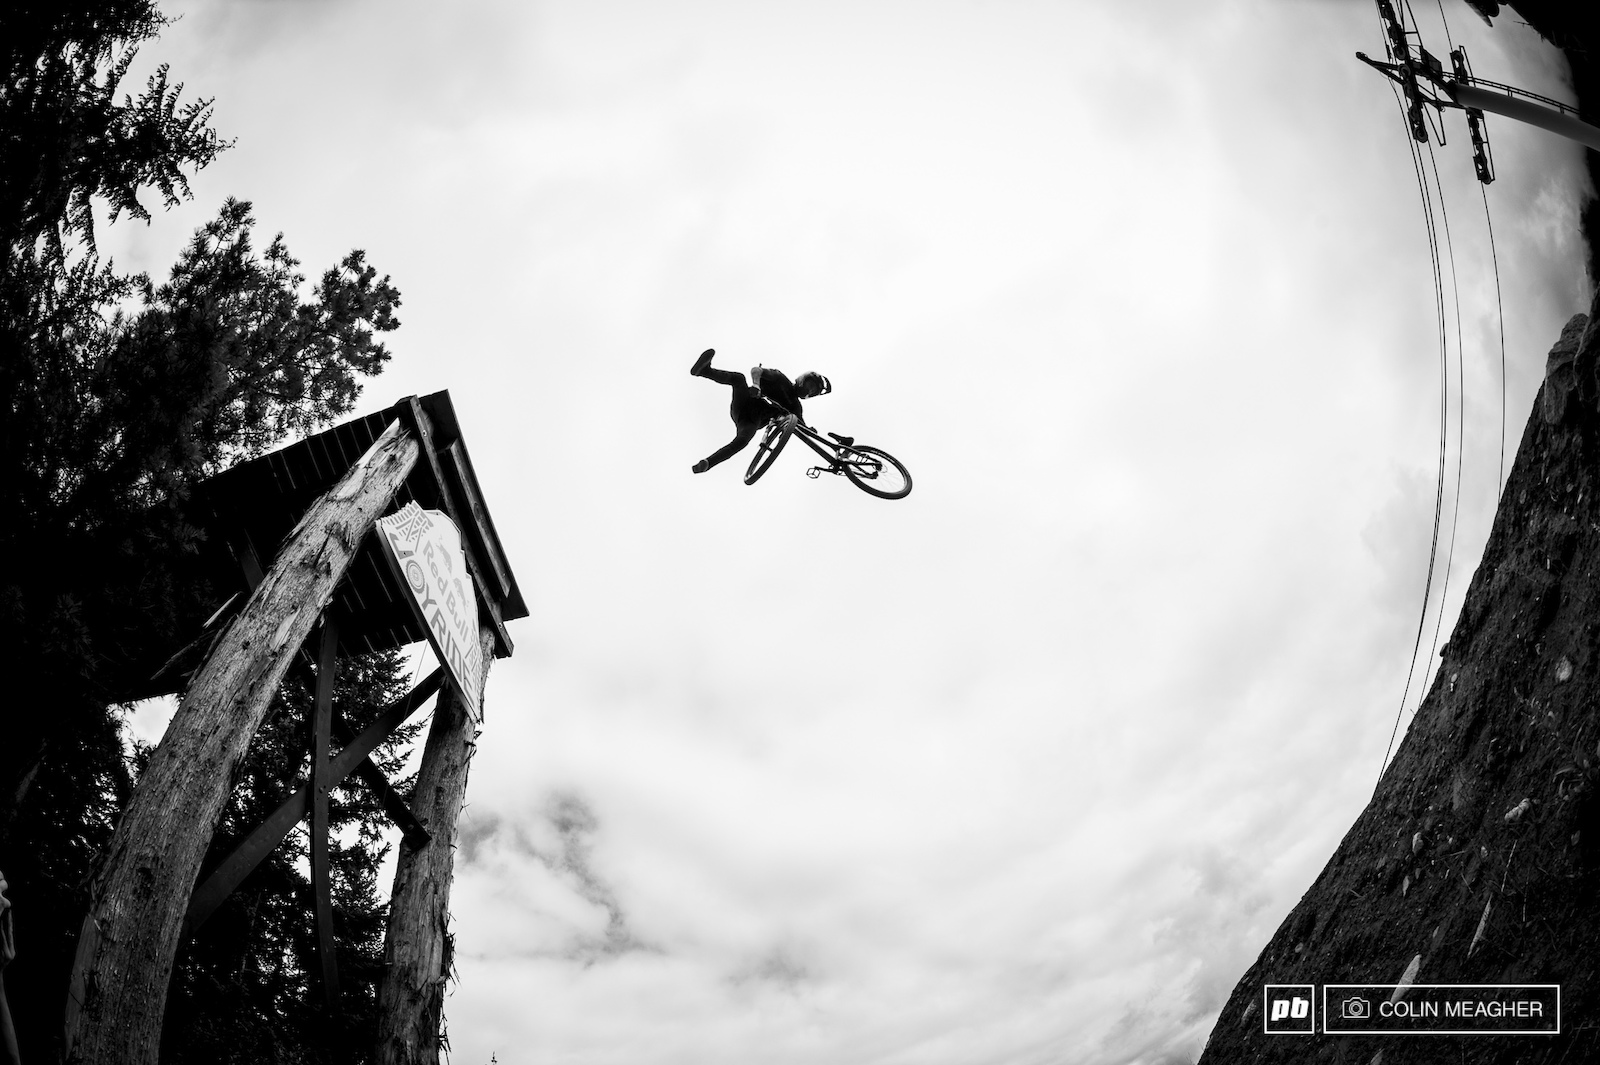 Tailwhips 360s and backflips were the stock trick off the opening drop.